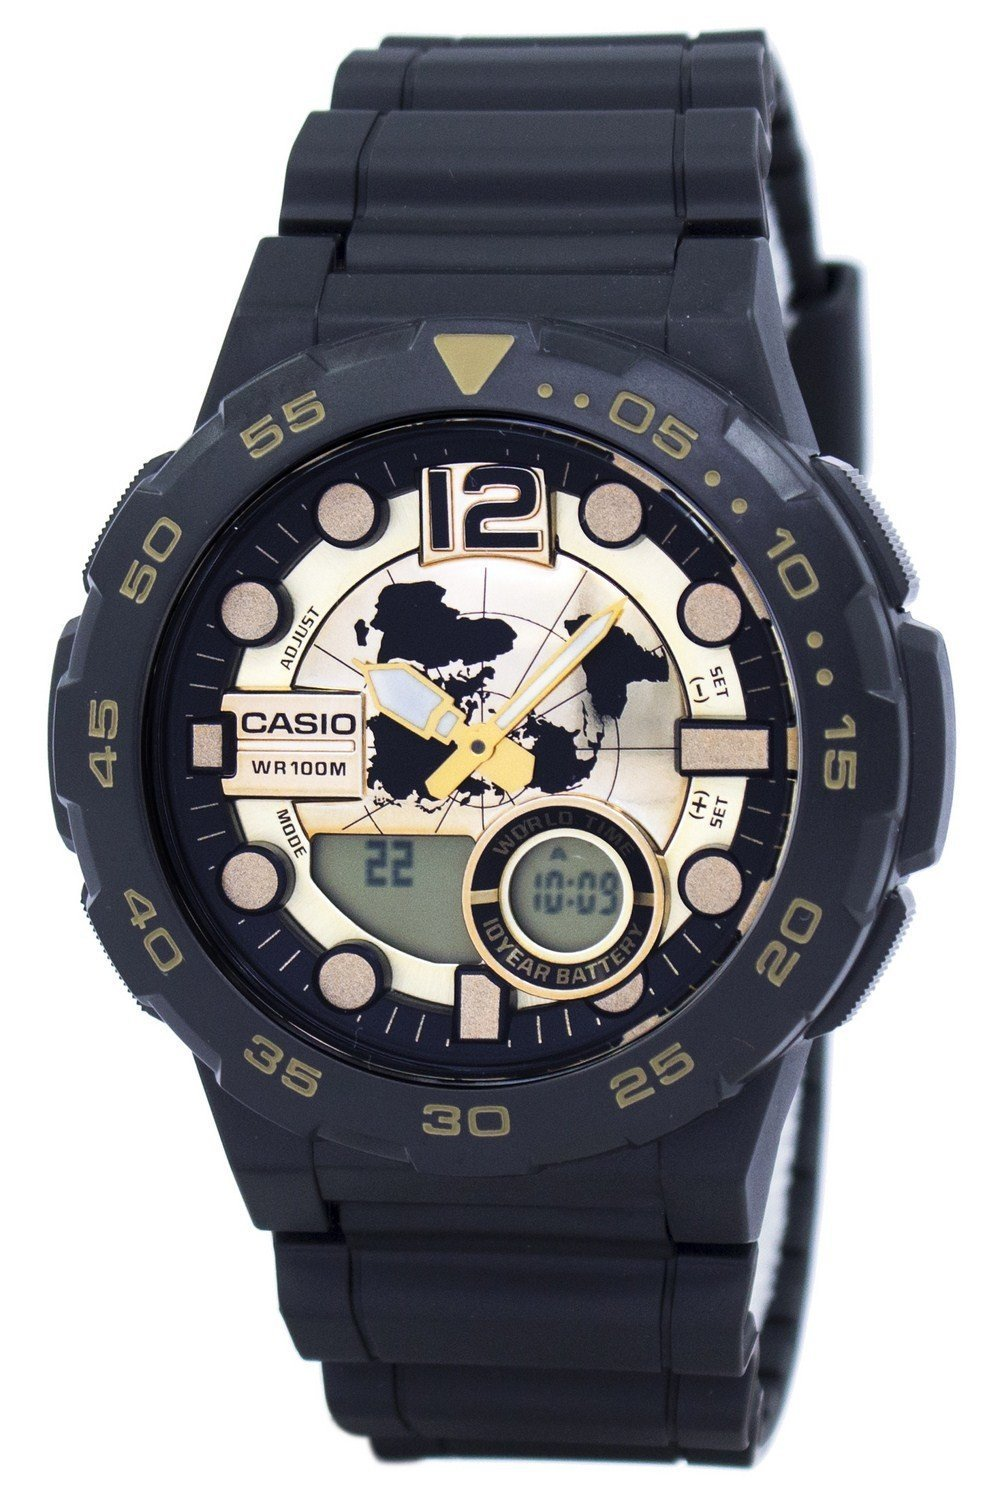 Casio World Time Alarm Analog Digital AEQ-100BW-9AV AEQ100BW-9AV Men's Watch